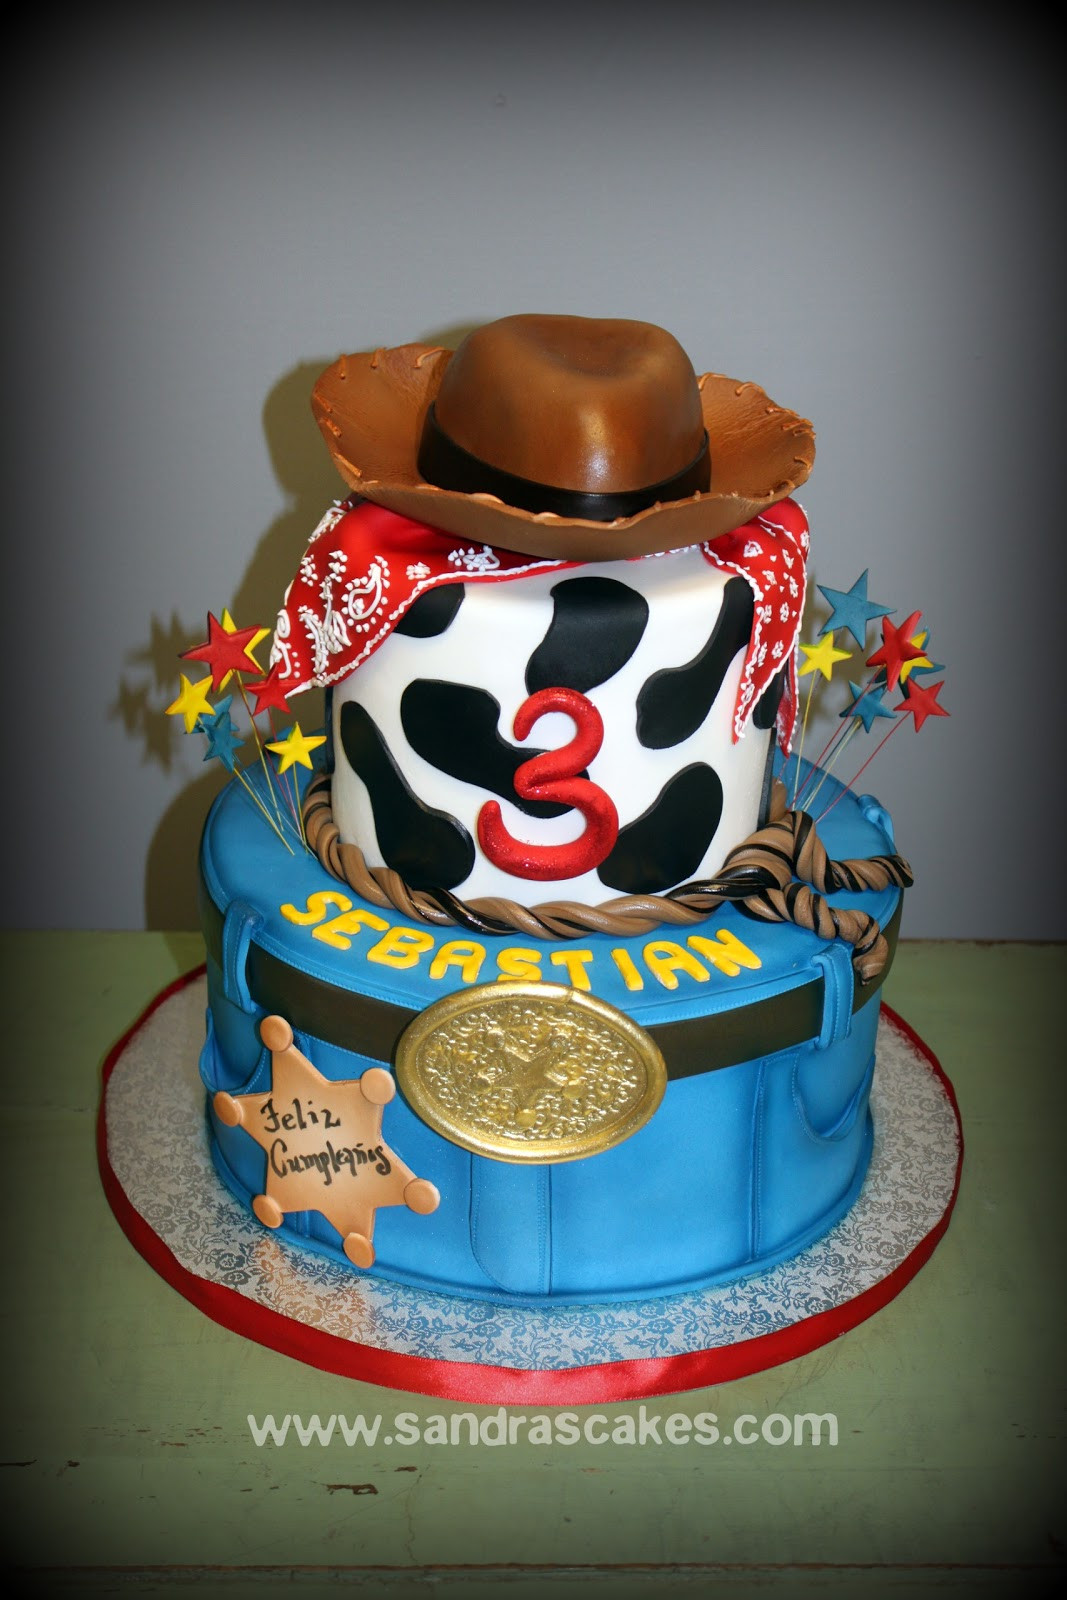 Best ideas about Toy Birthday Cake . Save or Pin Toy Story Birthday Cake Now.